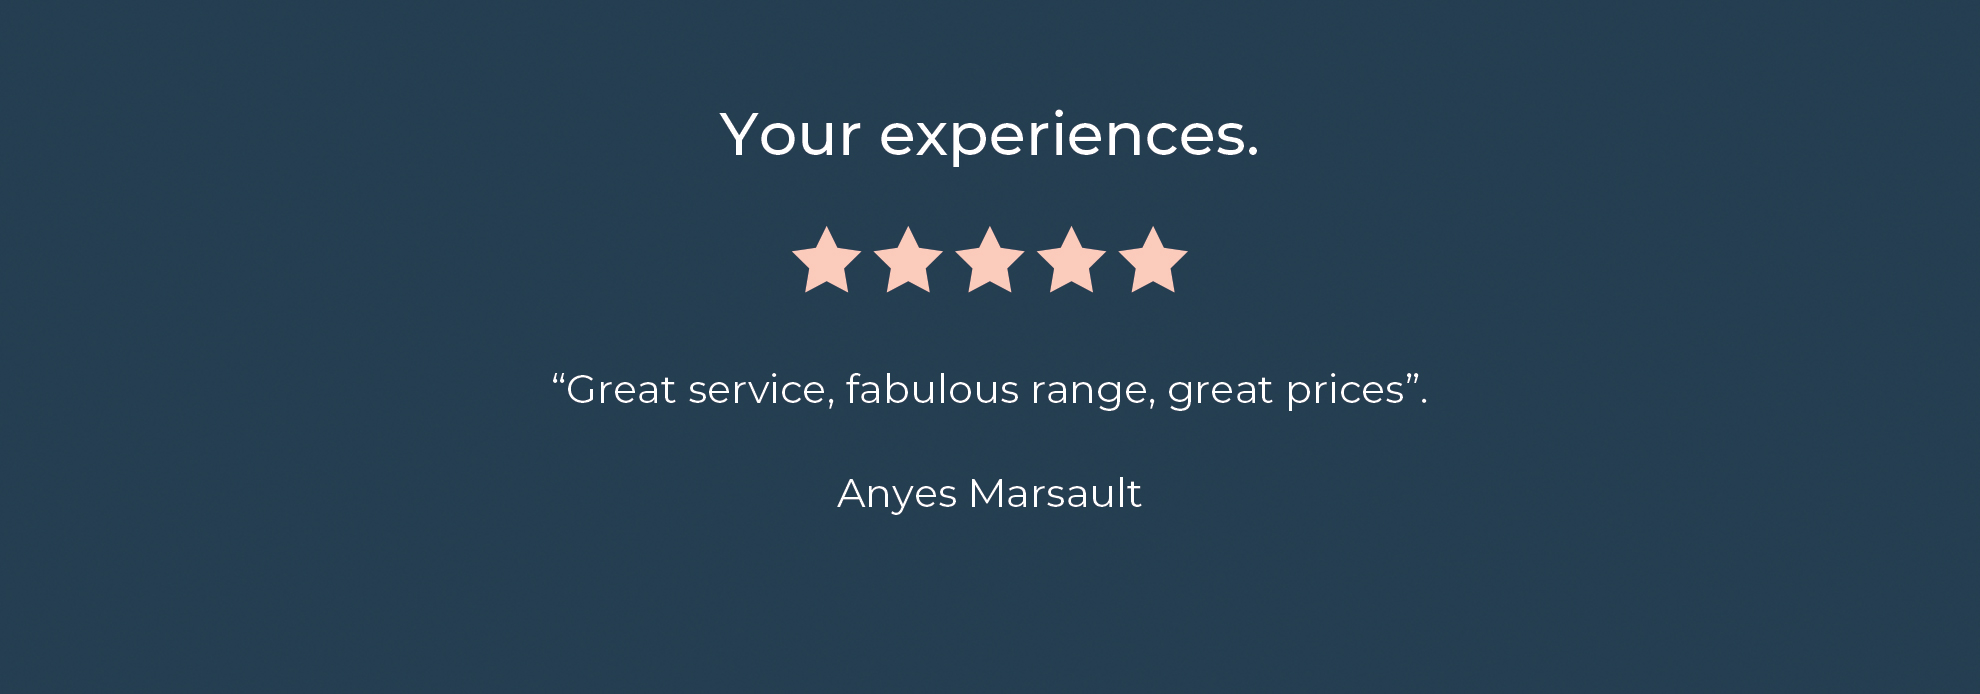 Your-experiences-customer-review-1